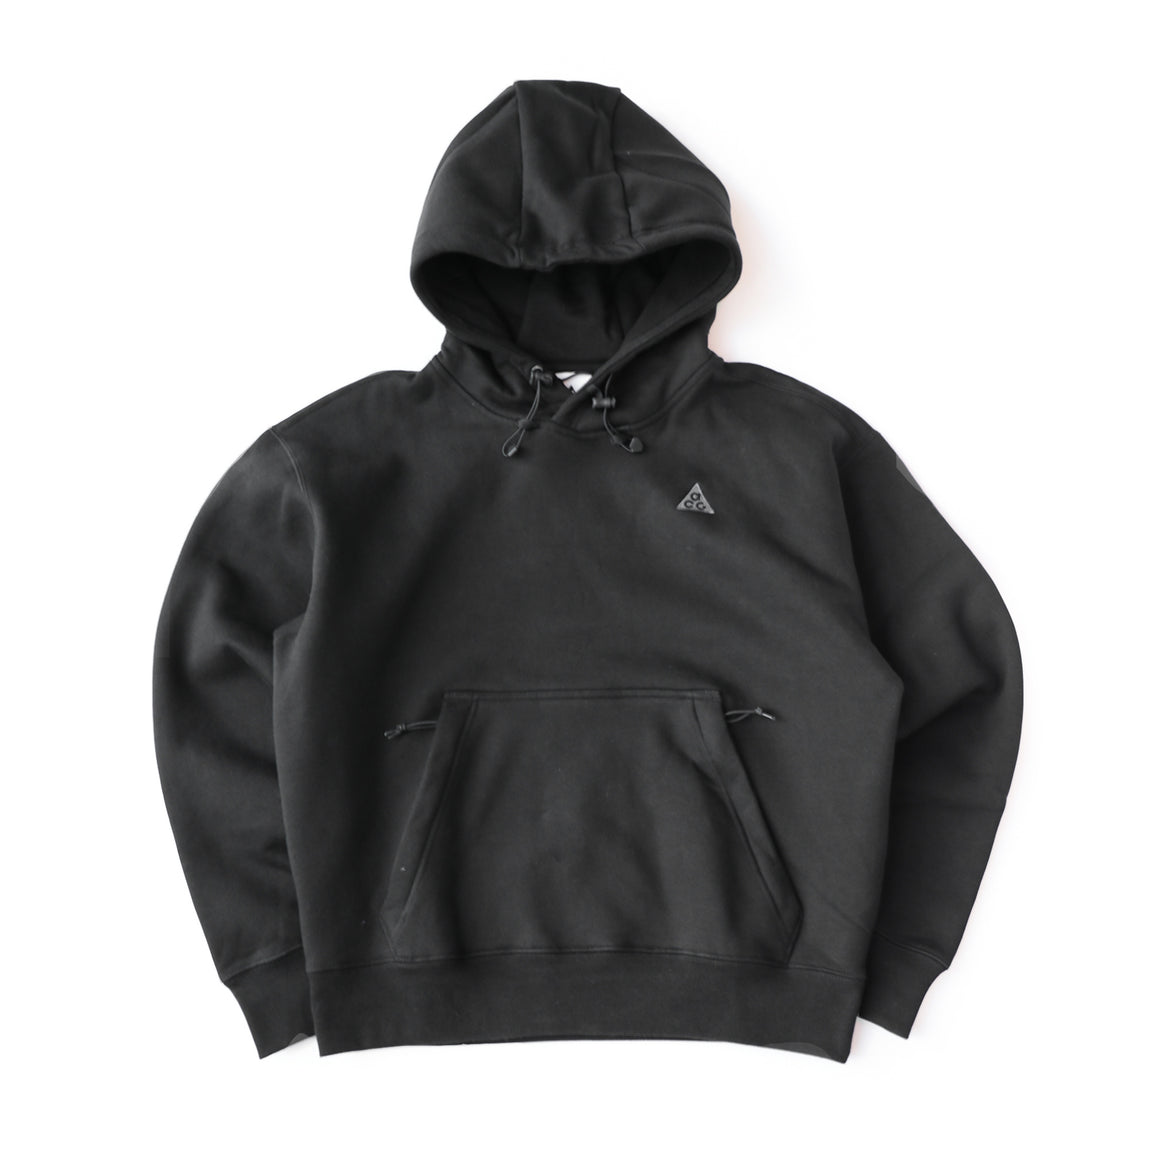 Nike ACG Pullover Fleece Hoodie (Black/Anthracite) - Nike ACG Pullover Fleece Hoodie (Black/Anthracite) -